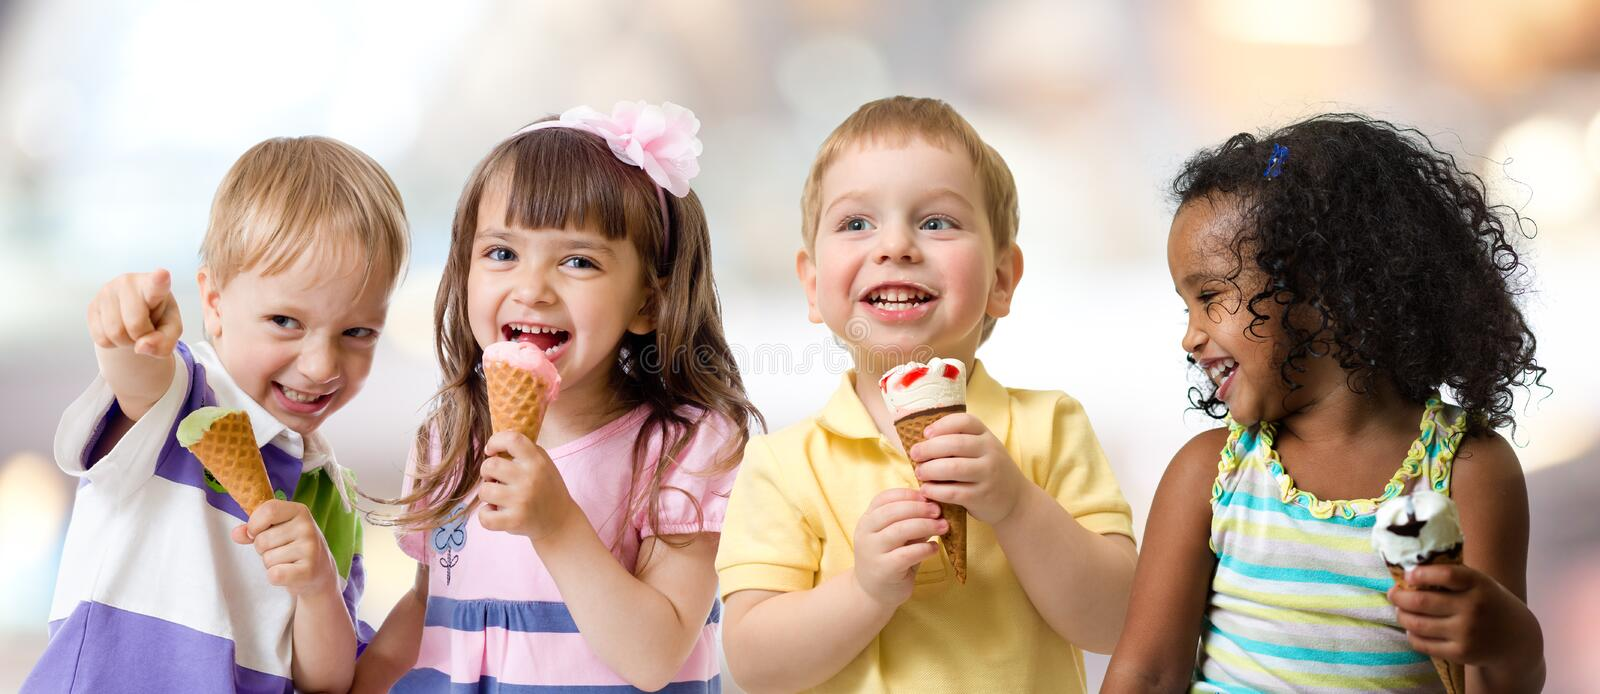 Happy kids group eating ice cream at a party in cafe stock photo